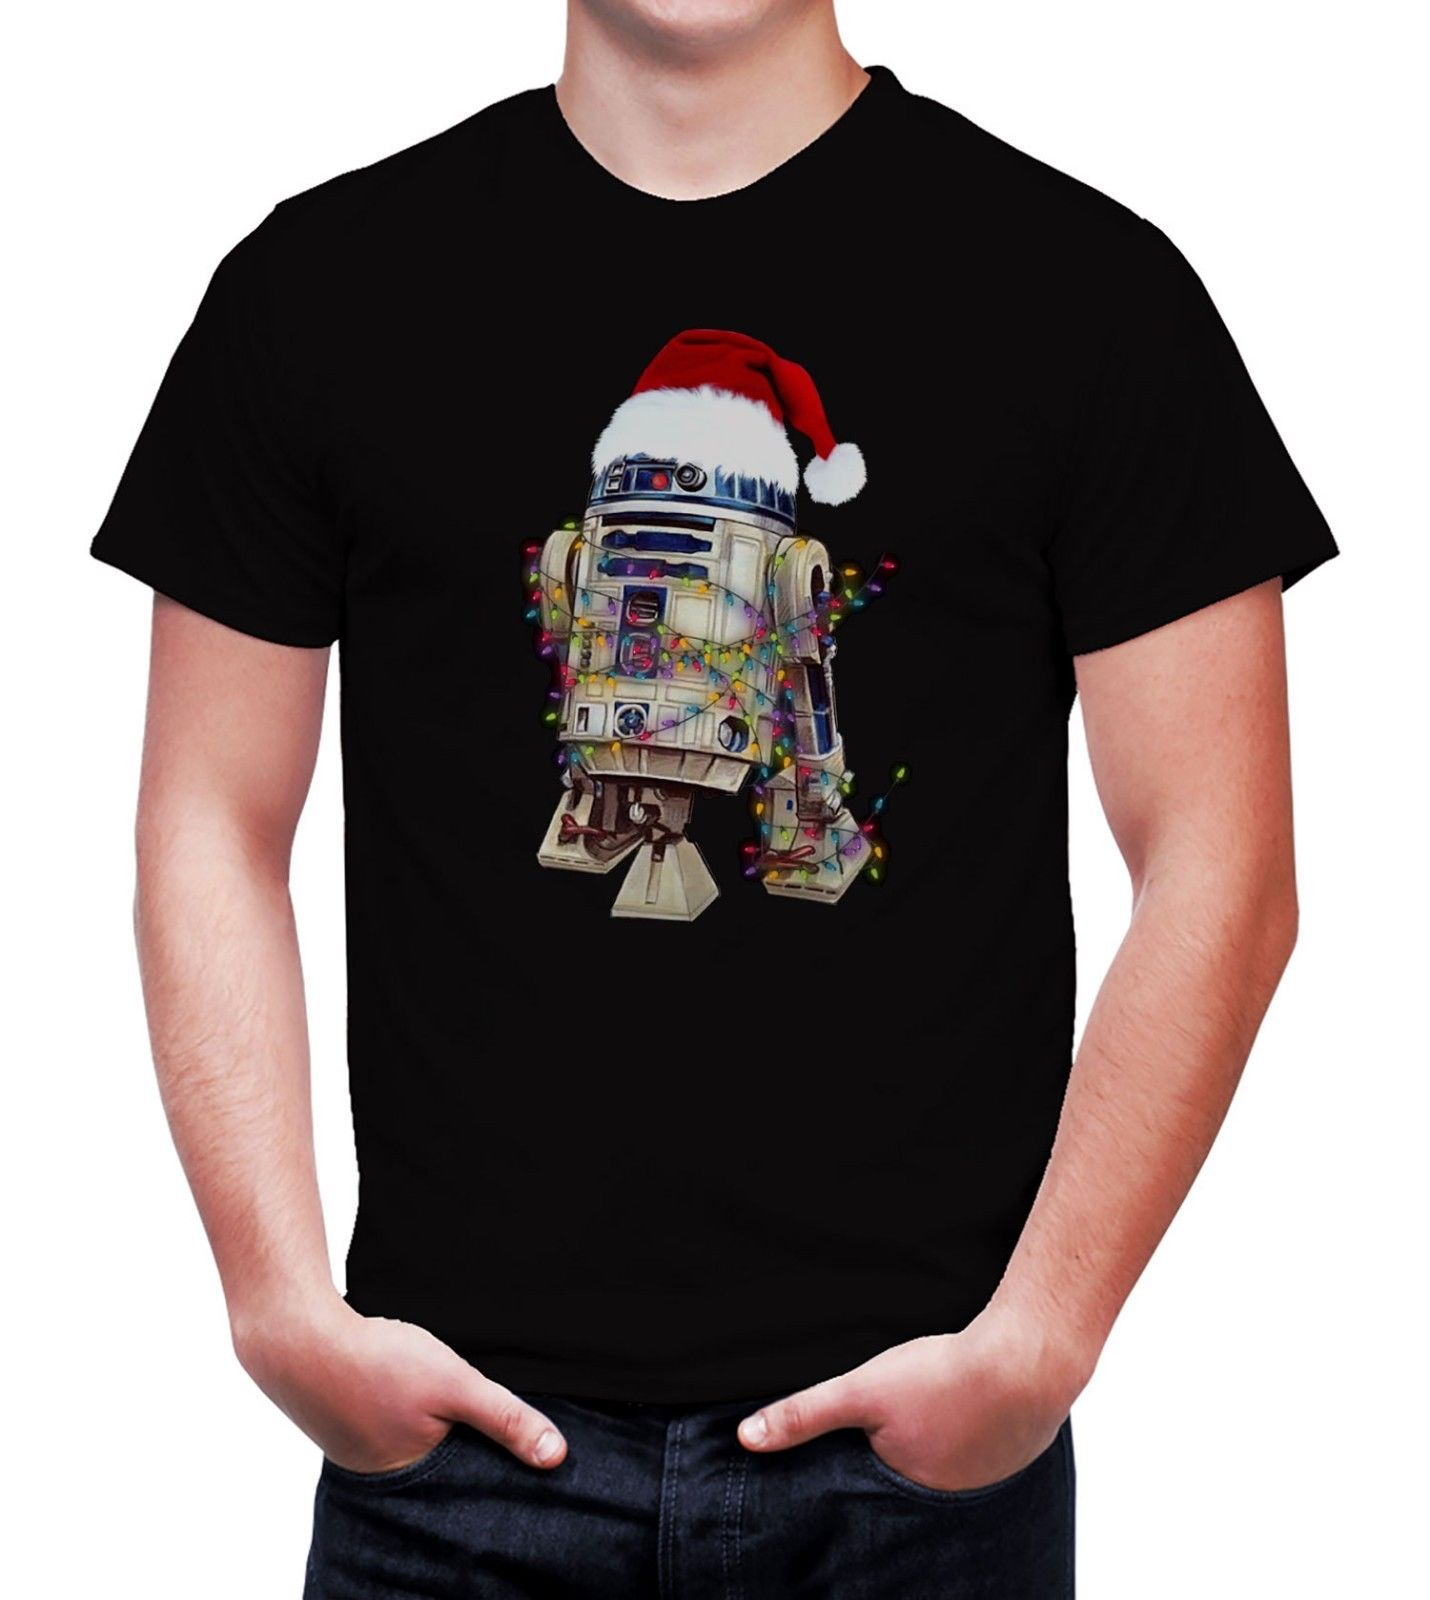 Mens <font><b>Star</b></font> <font><b>Wars</b></font> R2D2 <font><b>Christmas</b></font> T-Shirt Adults & Children Sizes Cool Casual pride t shirt men Unisex Fashion <font><b>tshirt</b></font> image